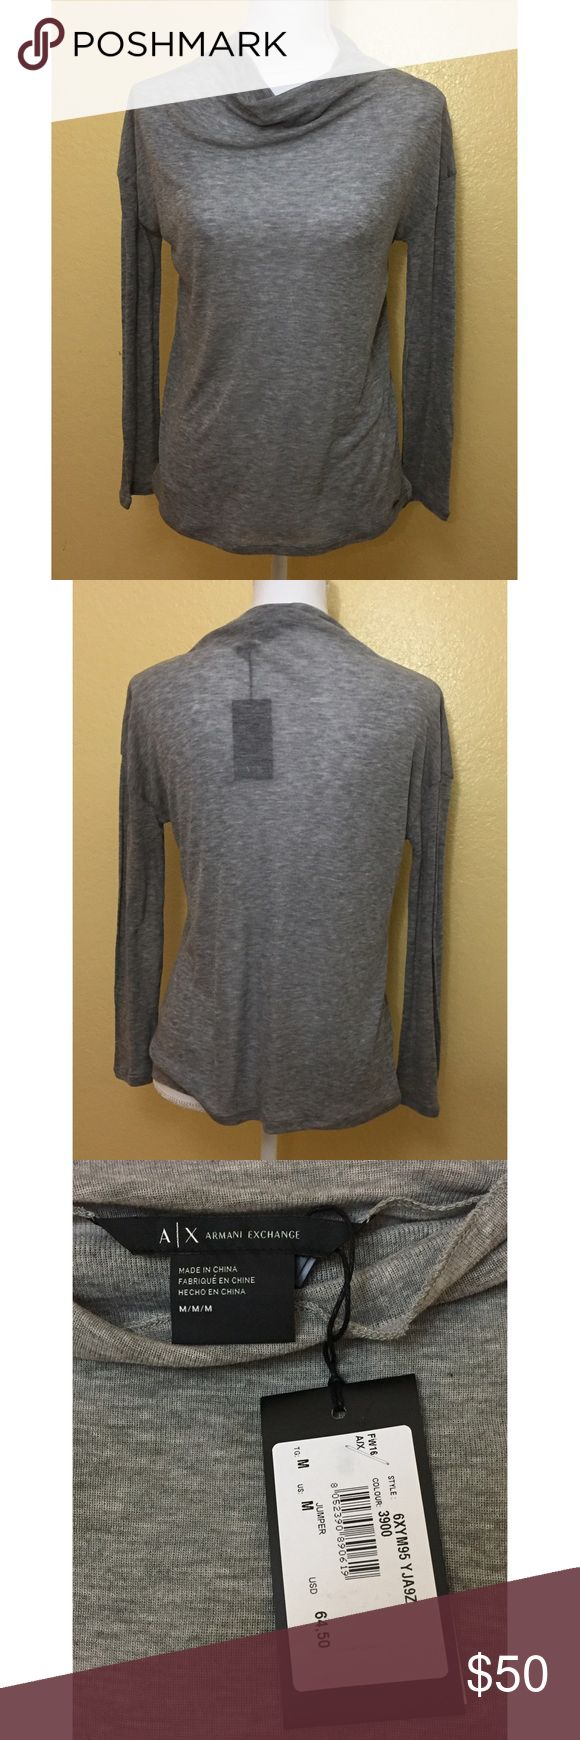 A/X Armani Exchange Top NWT. Never been worn. Perfect condition. No flaws. Size M. A/X Armani Exchange Tops Blouses